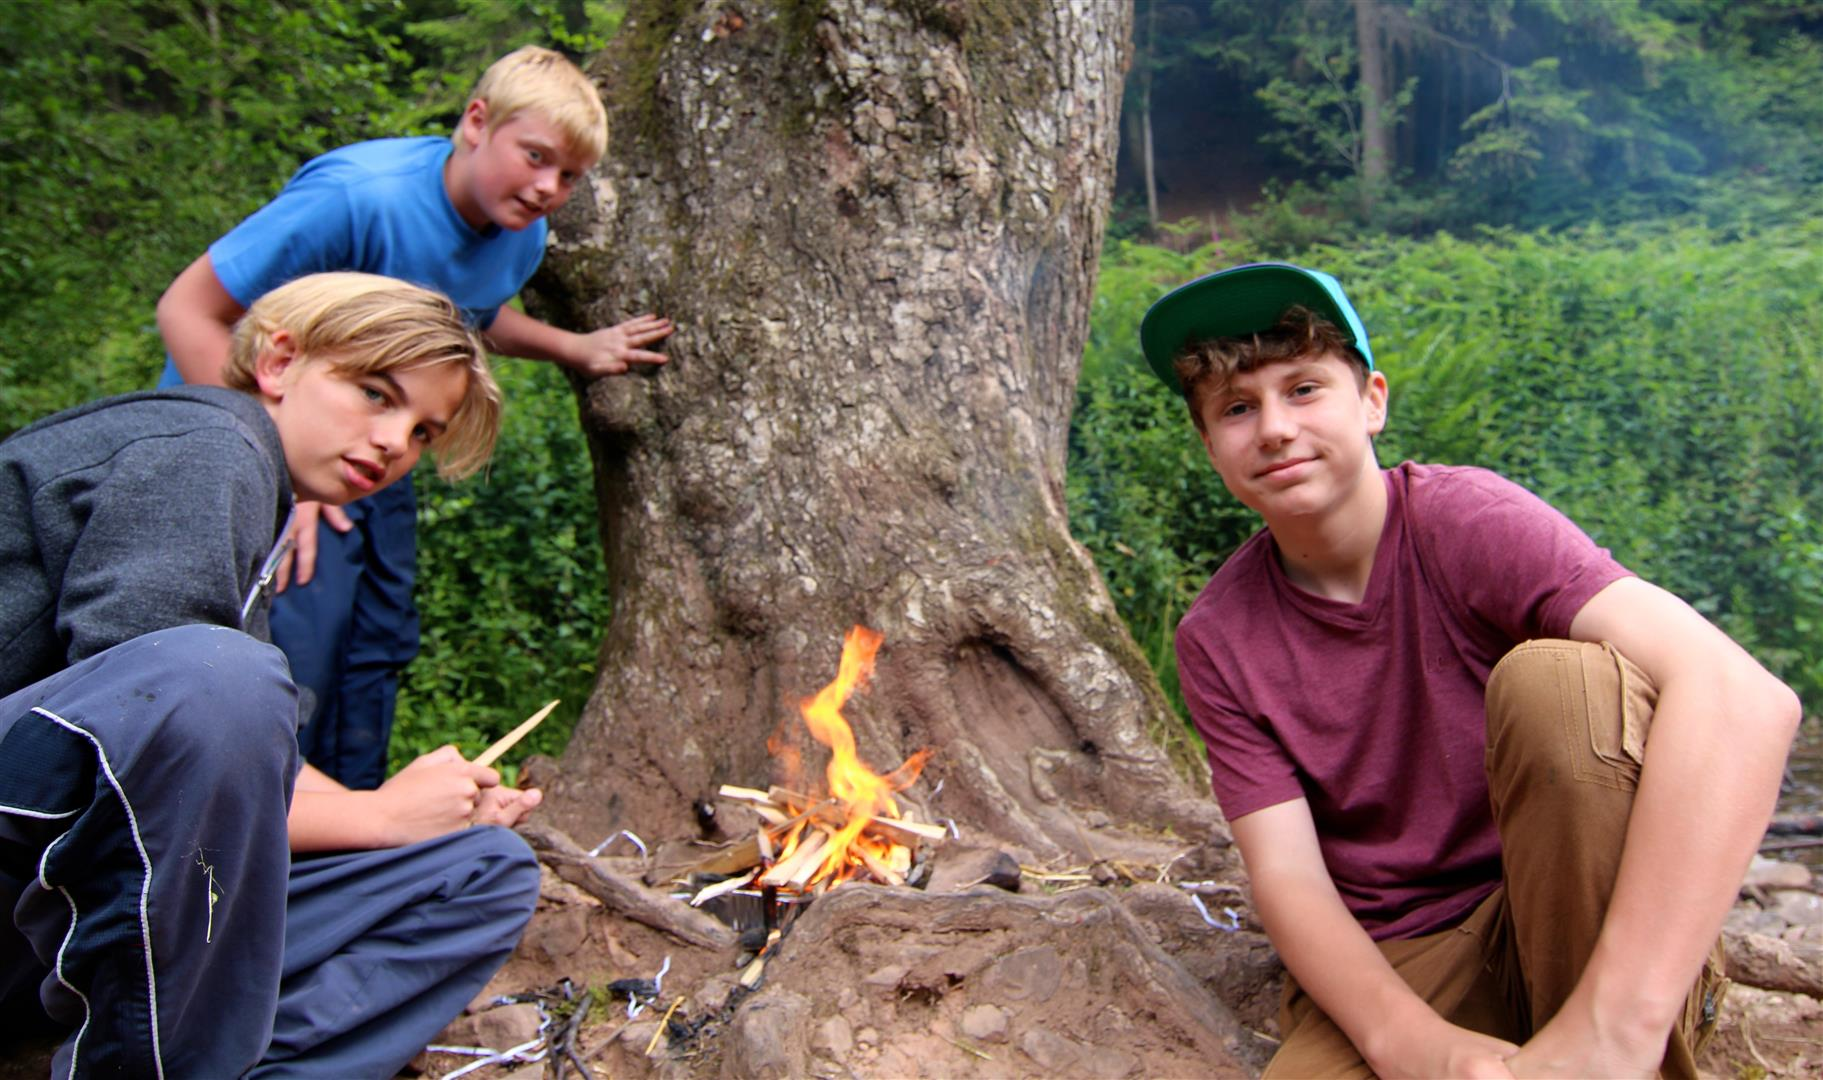 Robert Blake students test survival skills on Quantocks